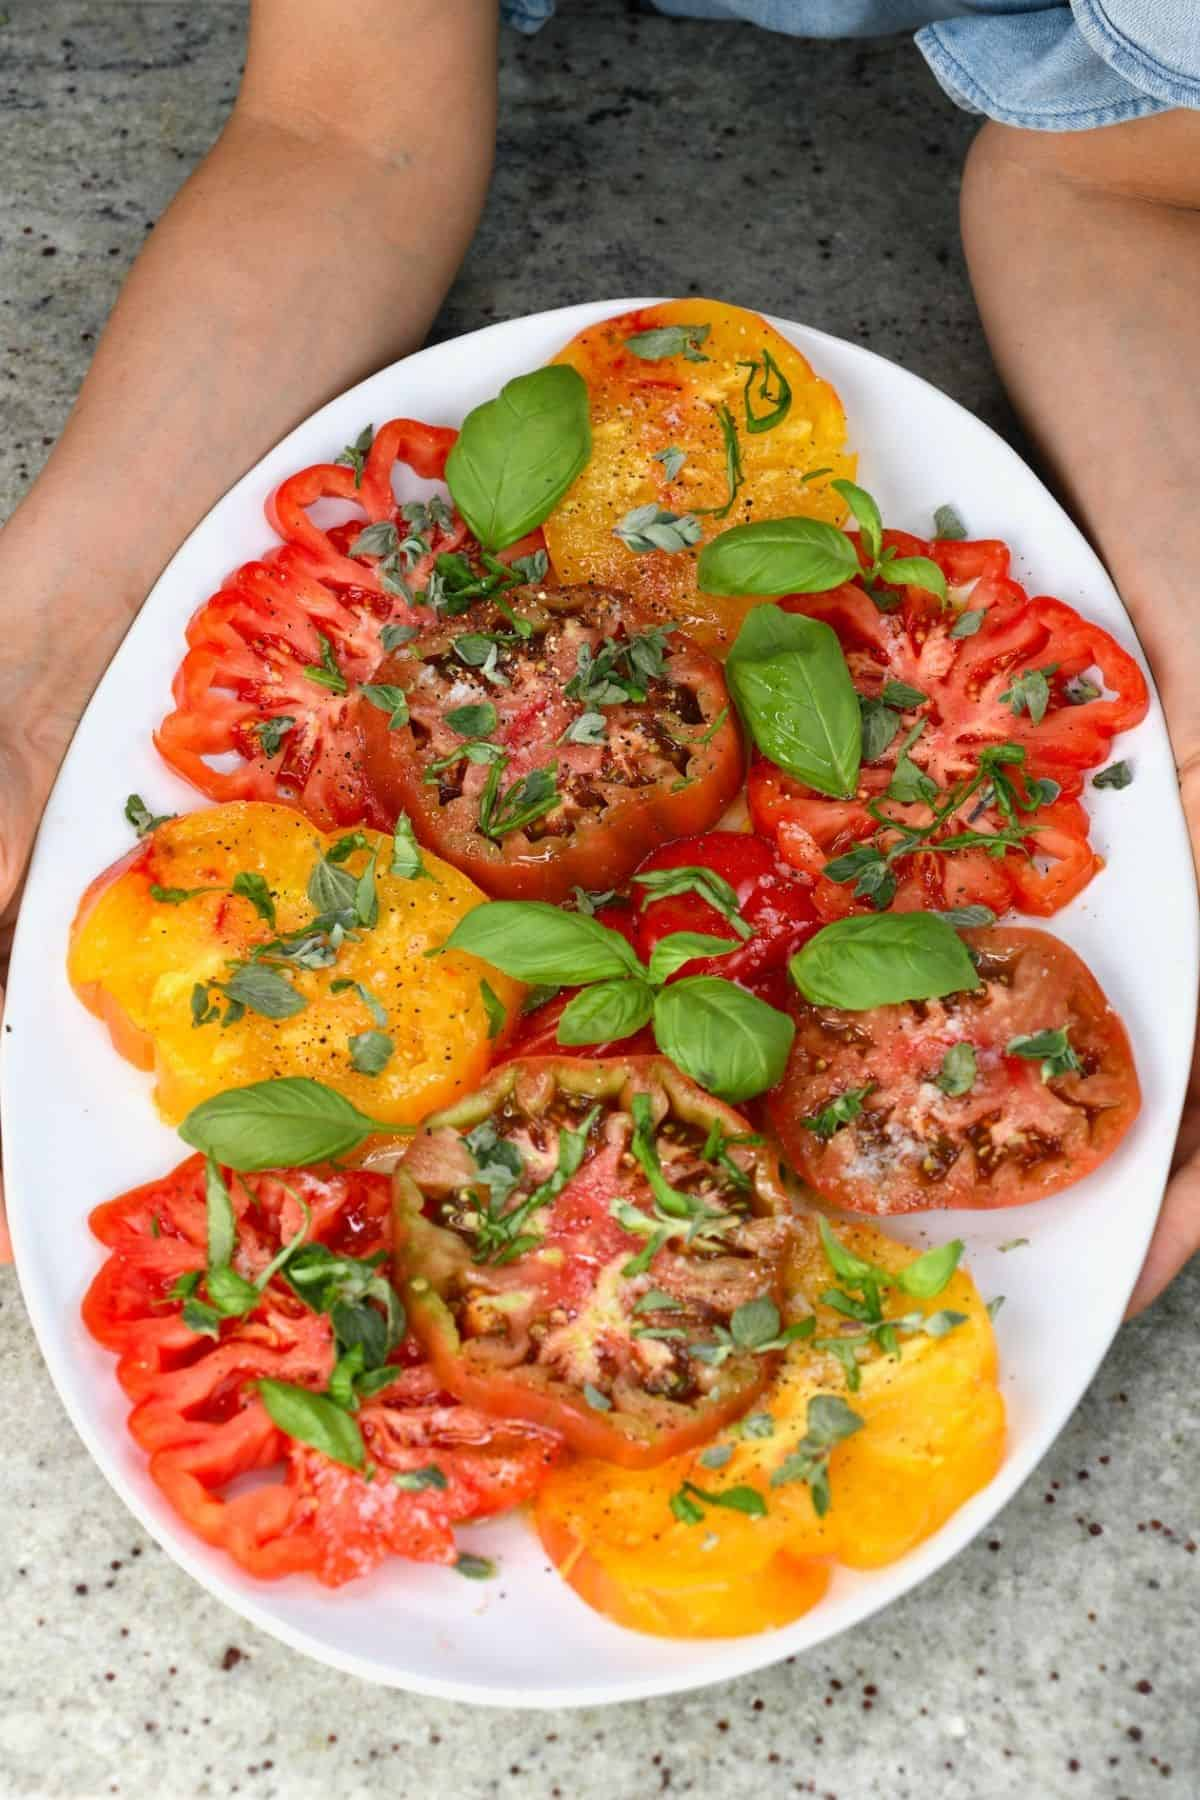 Simple tomato salad topped with basil in a plate